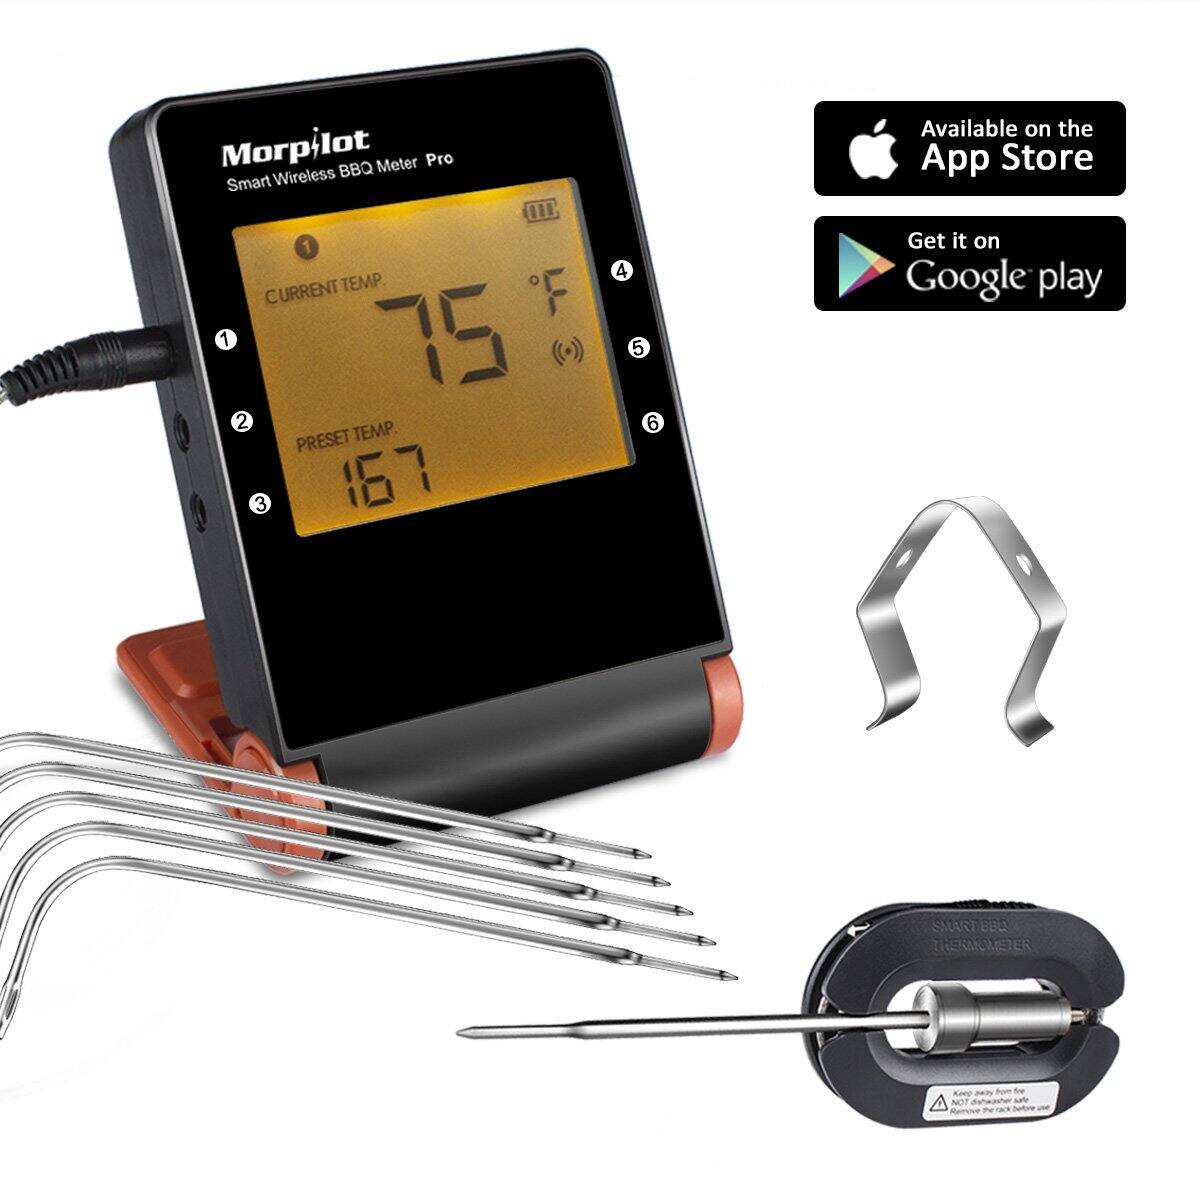 $37.79 Wireless Meat Thermometers for Grill Smoker, Morpilot Bluetooth BBQ Grill with 6 Upgraded Probes for Outdoor Grilling Smoker Oven Grid @AMAZON